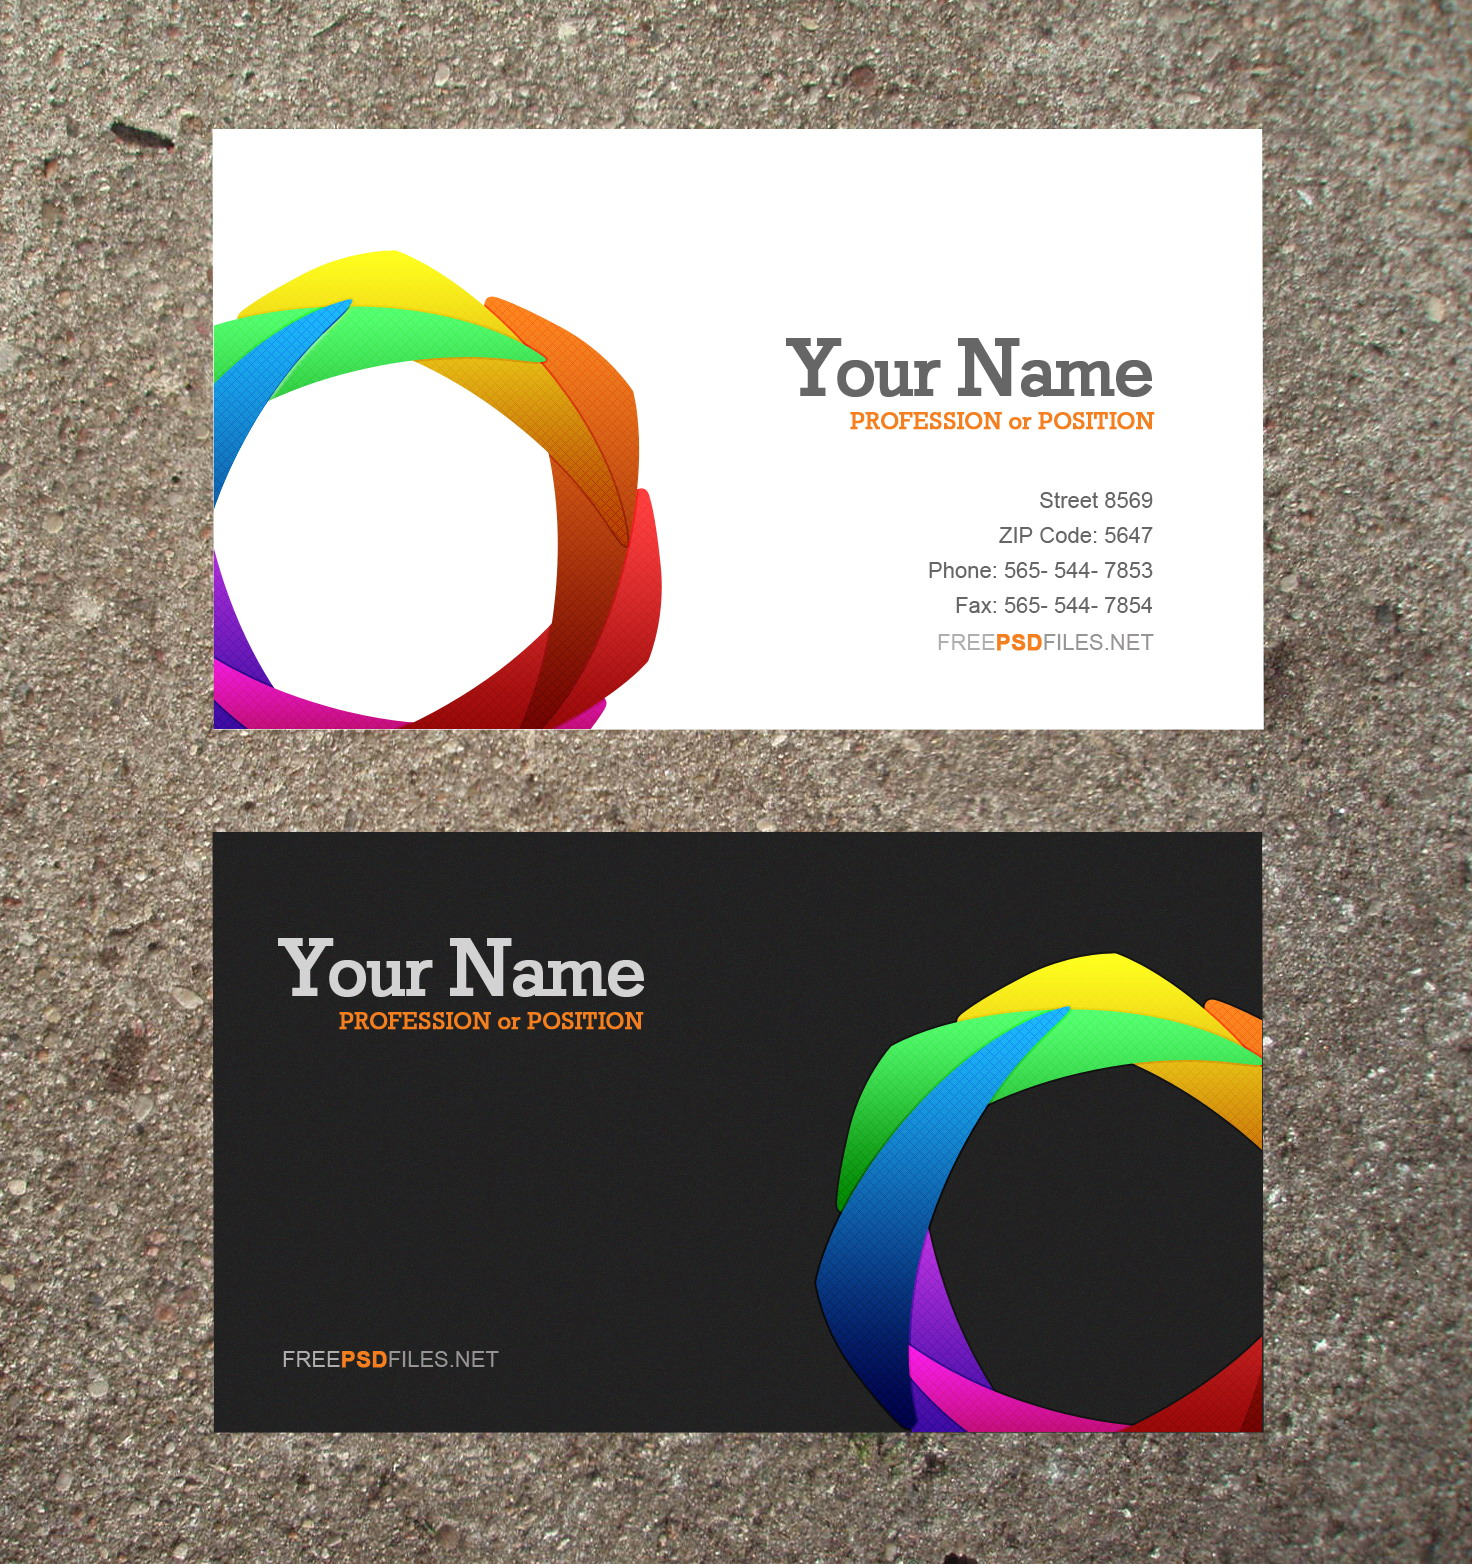 20 free psd business card templates images free business for Business card online free